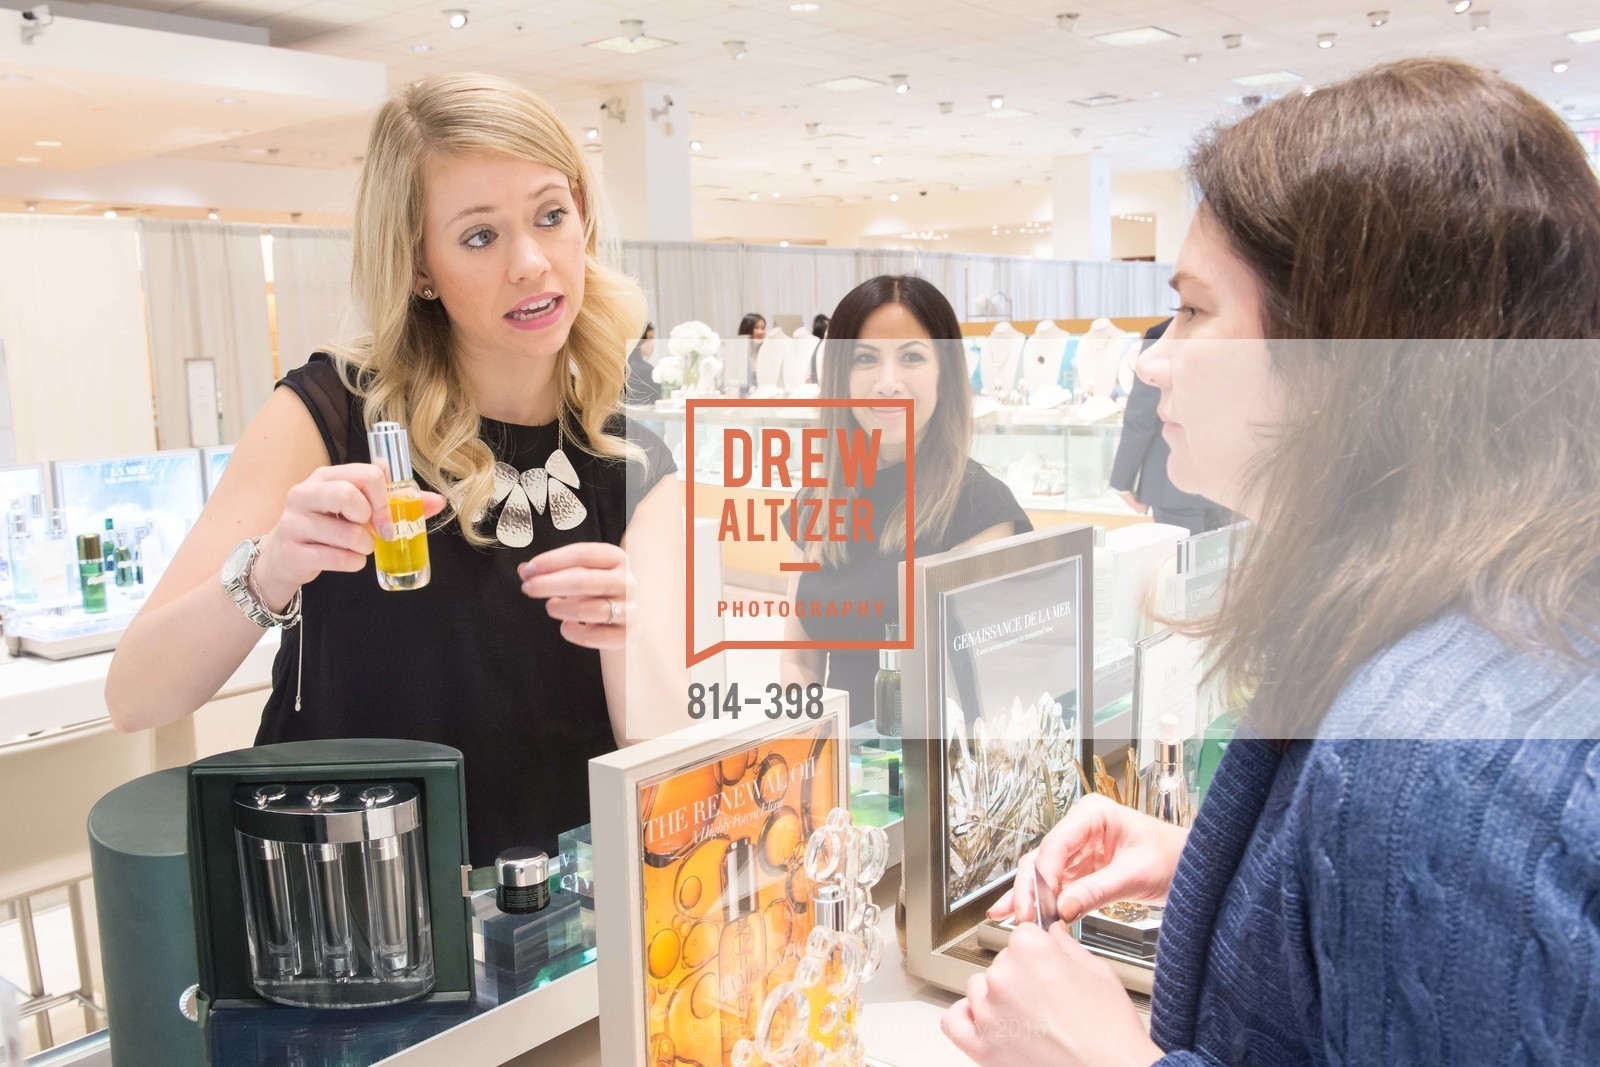 Extras, Project Beauty at Neiman Marcus Palo Alto, October 16th, 2015, Photo,Drew Altizer, Drew Altizer Photography, full-service agency, private events, San Francisco photographer, photographer california